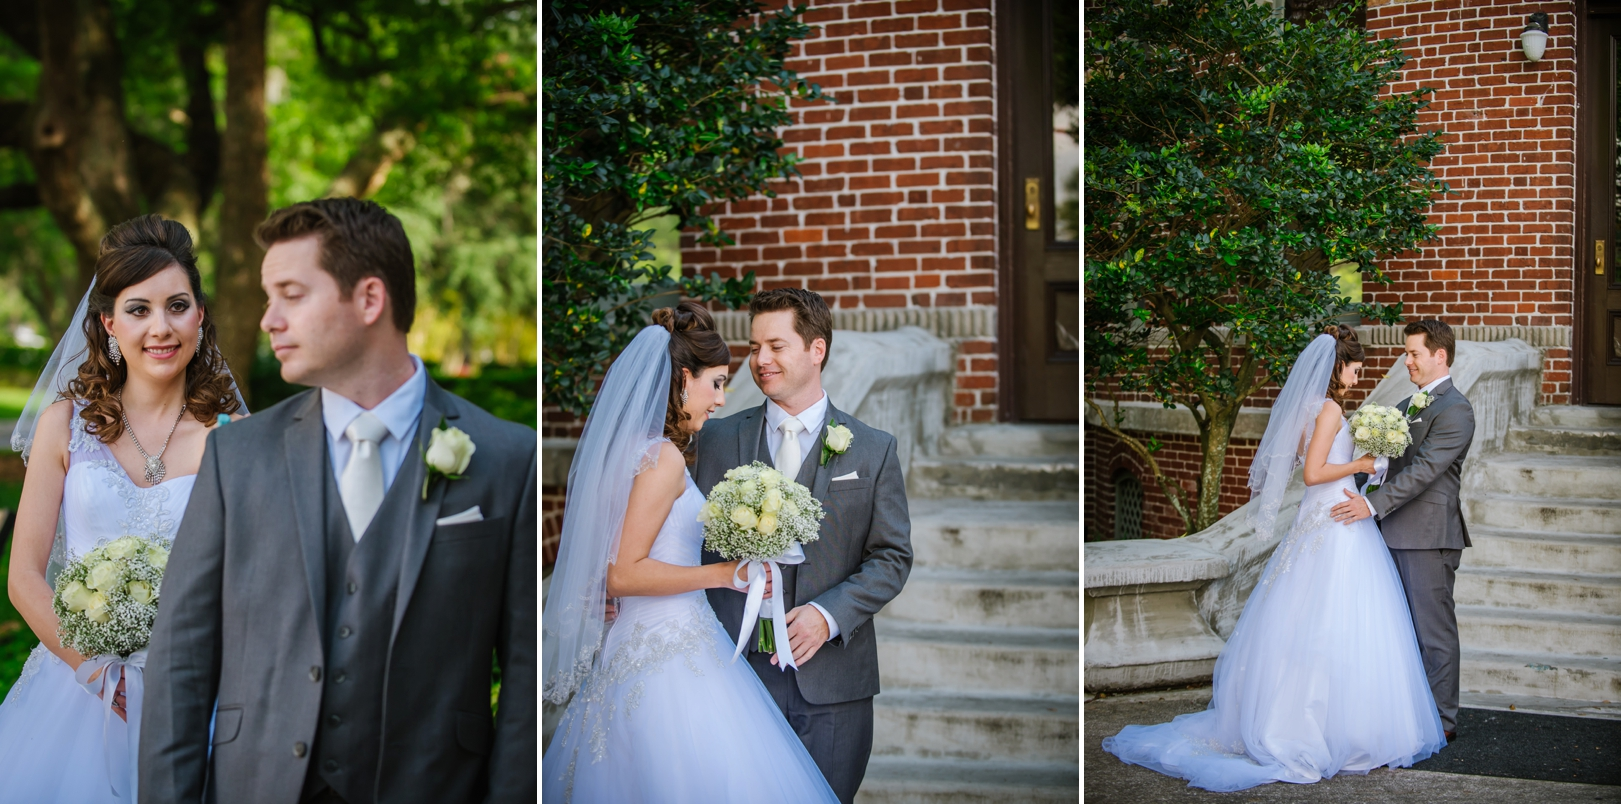 tampa-wedding-photography-traditional-cathedral-wedding_0008.jpg